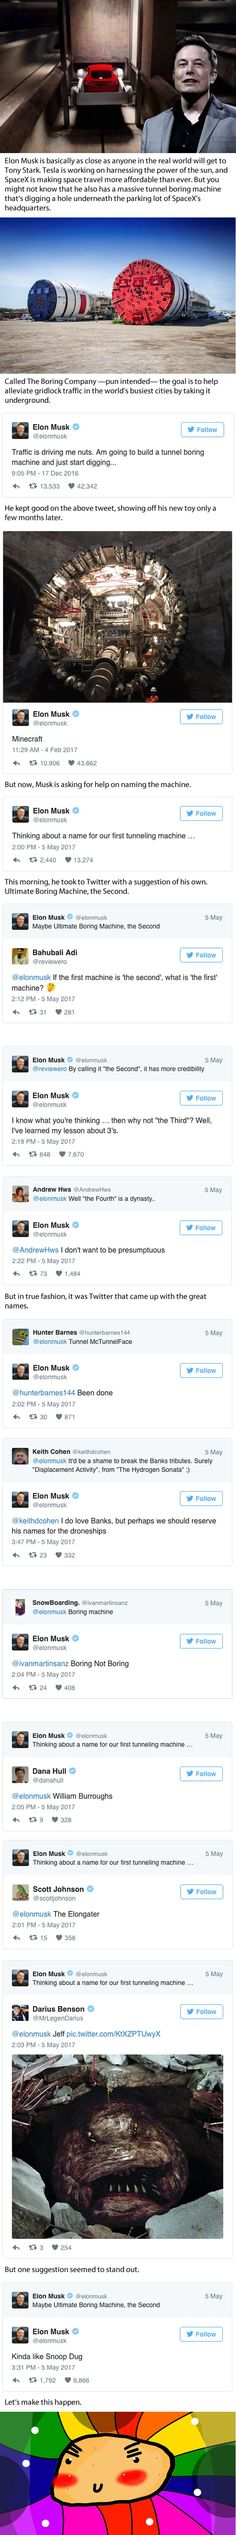 Elon Musk Asked For Help Naming Their First Tunneling Machine And The Internet Obliged